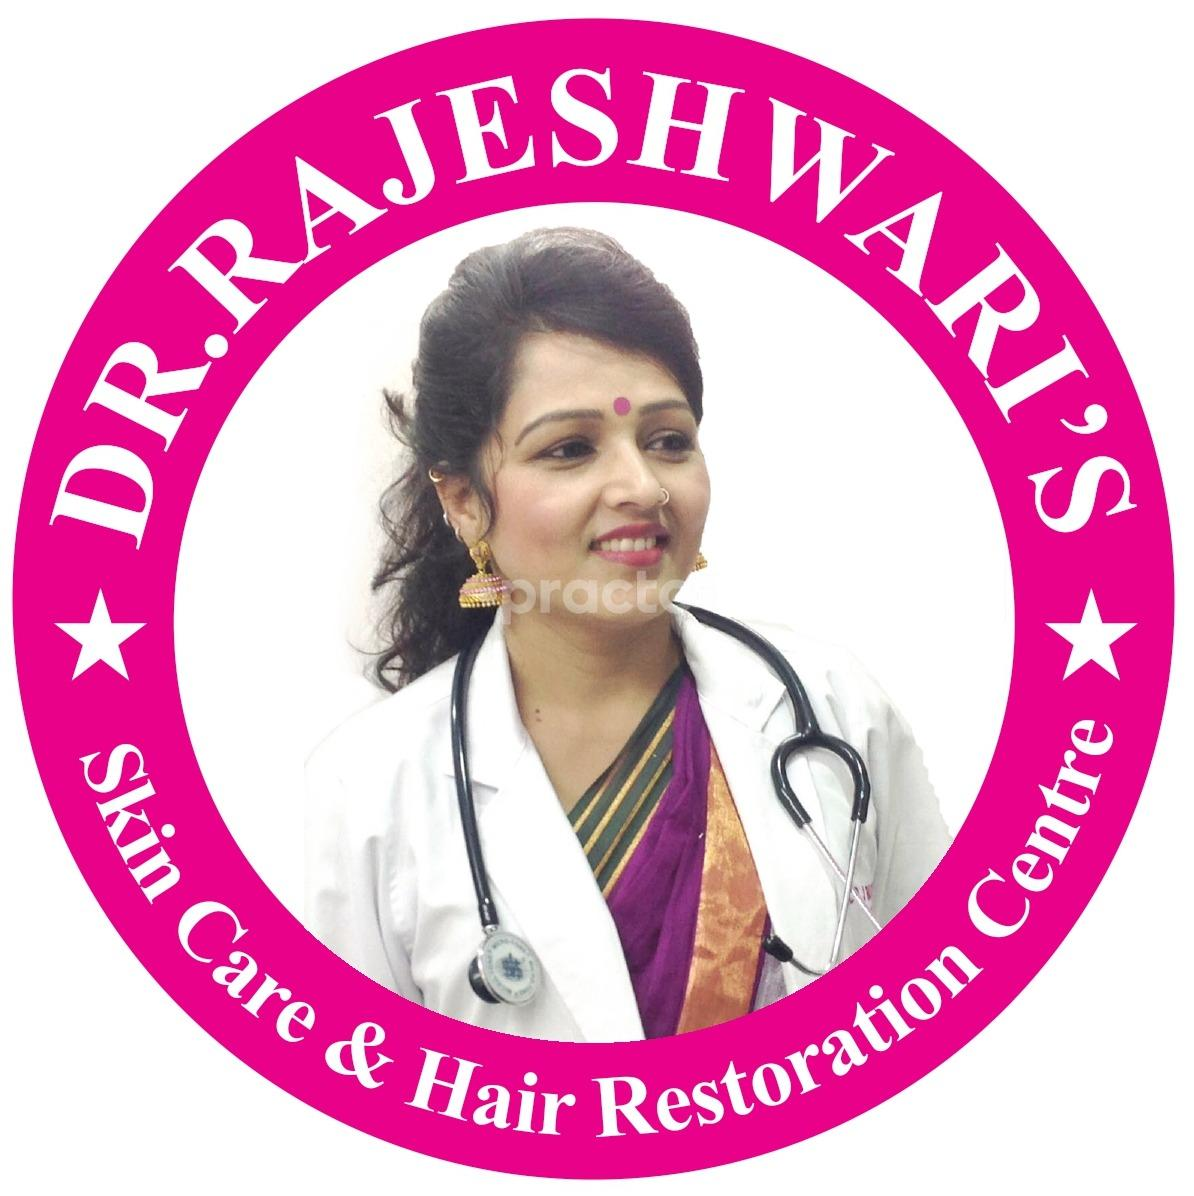 Dr.Rajeshwari' Skin Care & Hair Restoration Centre